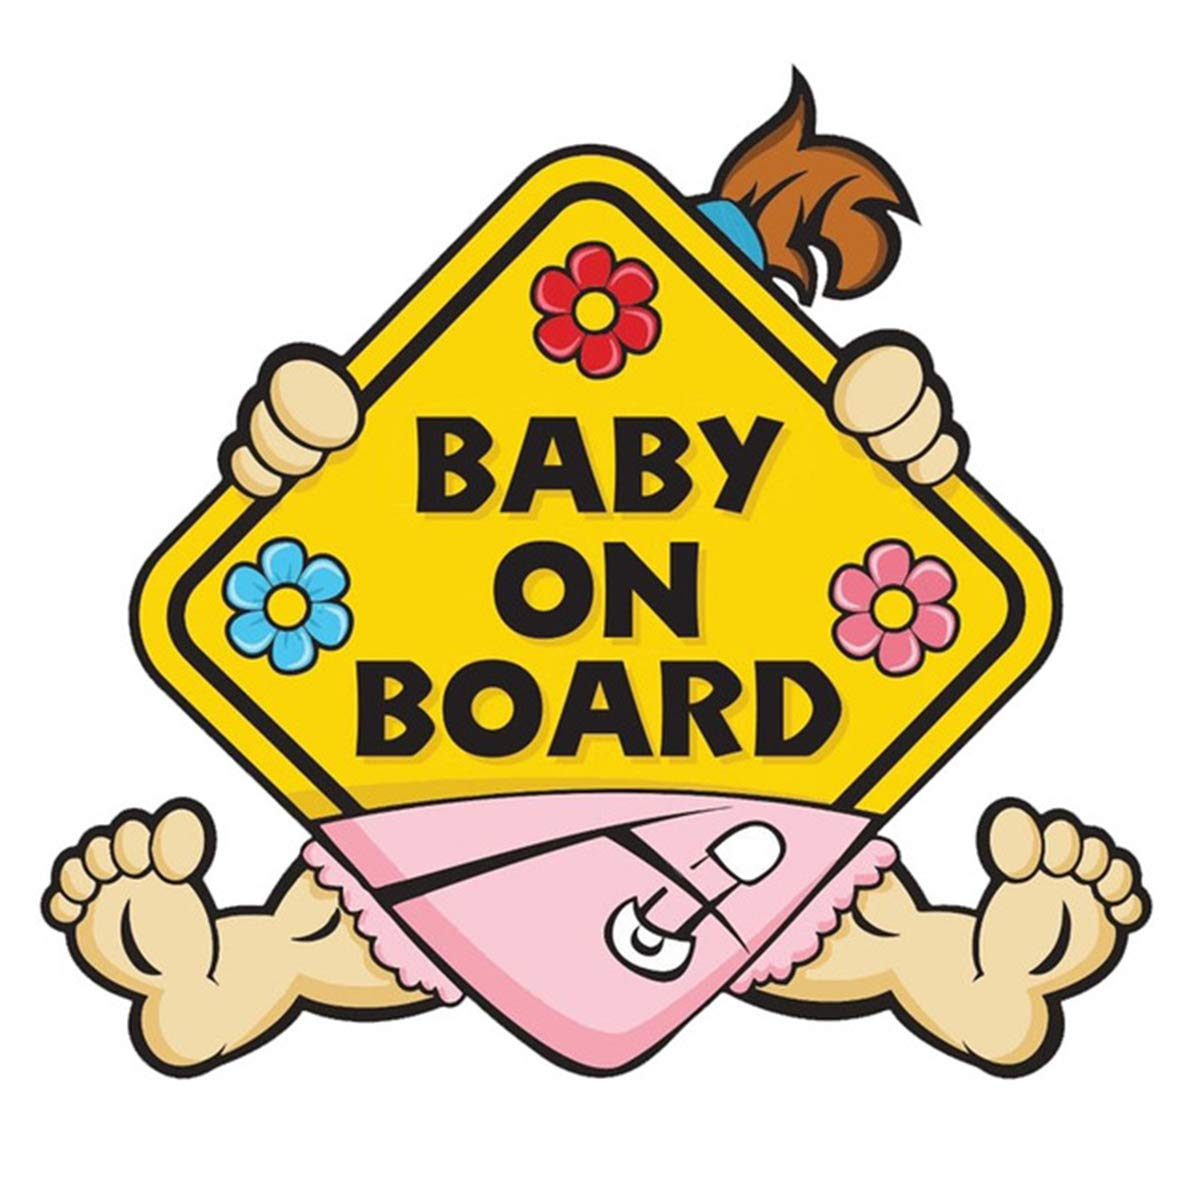 Durable Warning Sticker and Easy to Install Baby Legs Baby On Board Sticker Removable Waterproof Car Decals Safety Signs for Parents